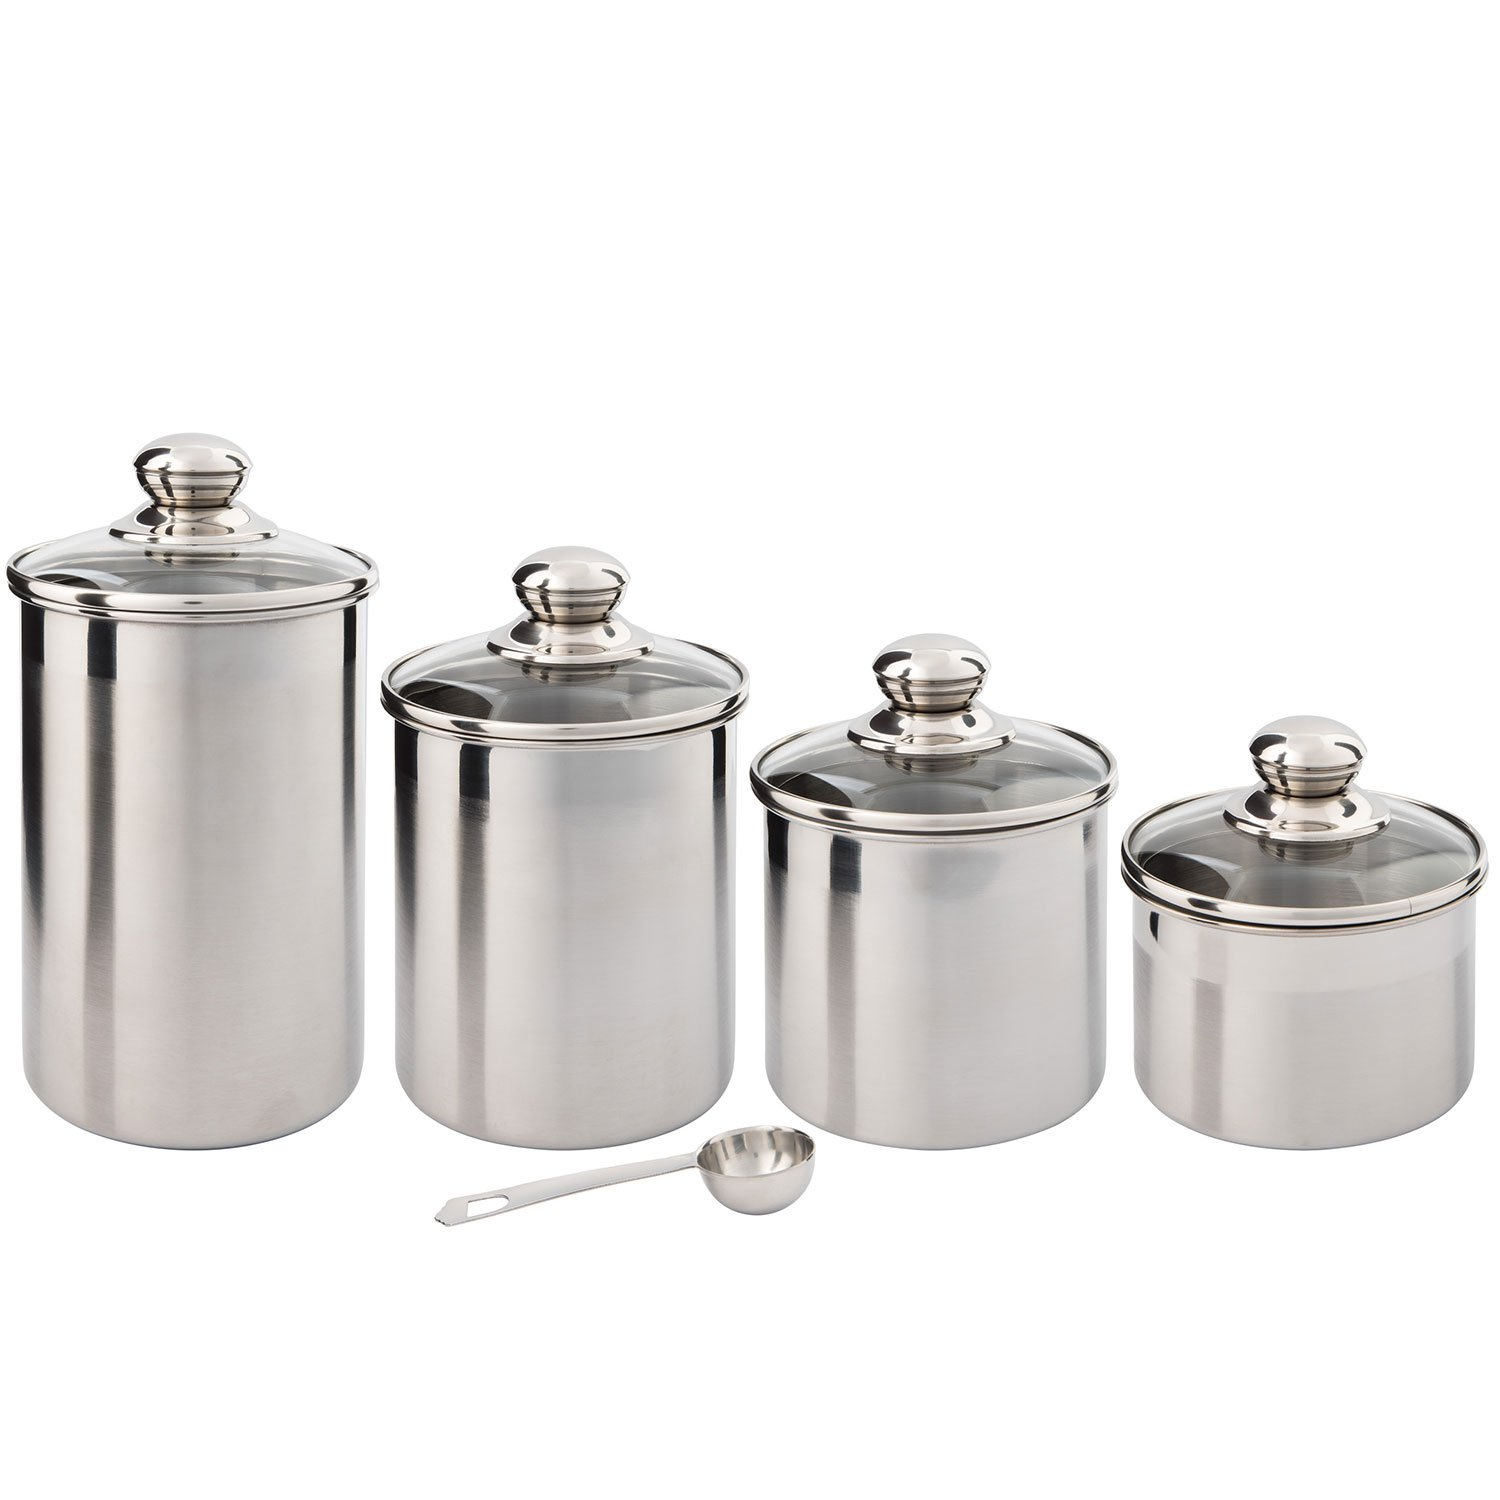 Oggi White Canister Set Part - 20: Beautiful Canisters Sets for the Kitchen Counter, 4-Piece Stainless Steel,  Small Sized